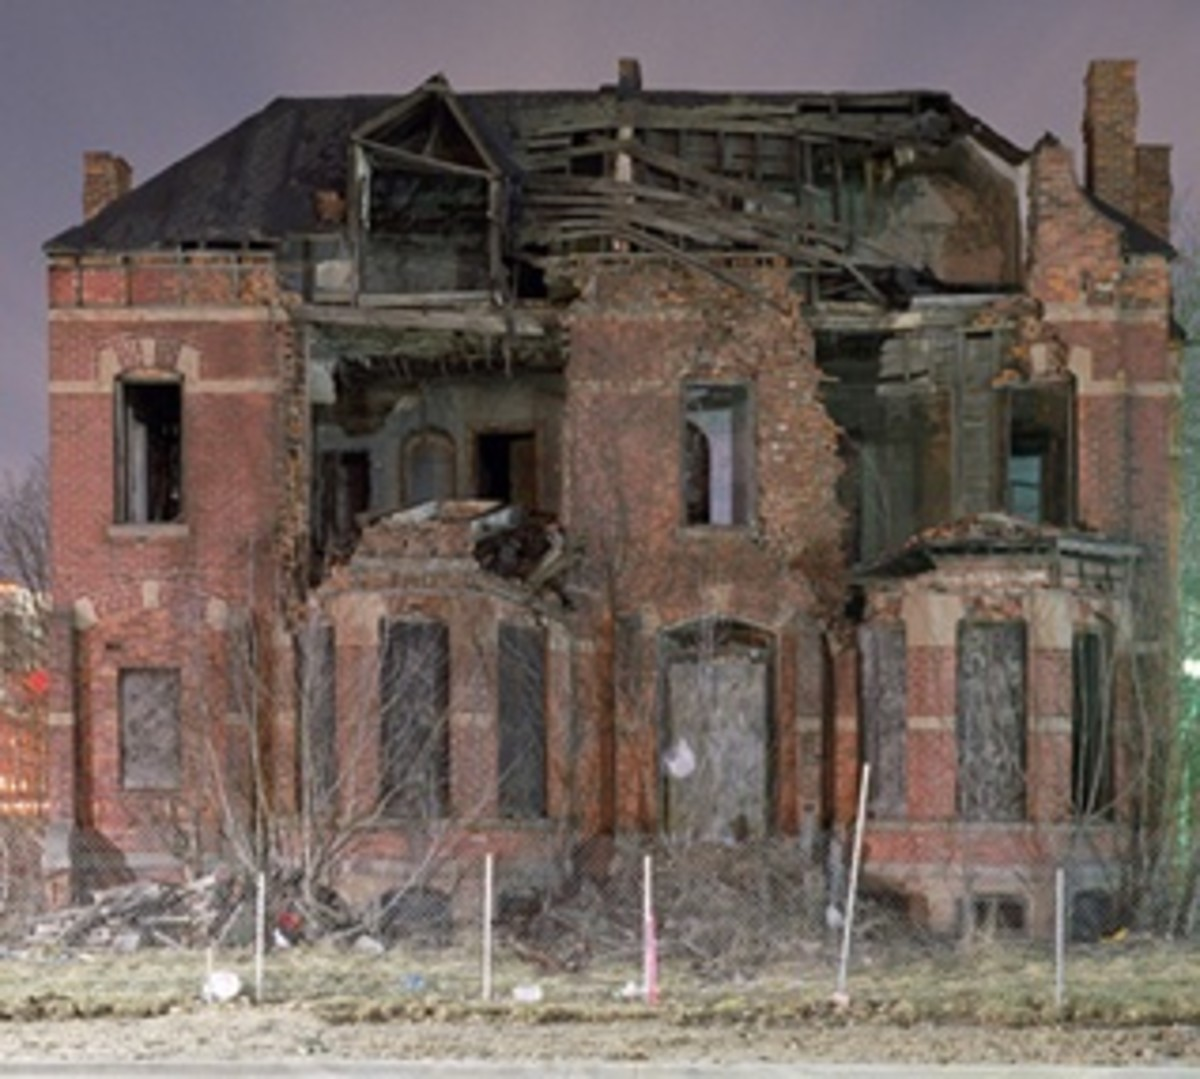 URBAN DECAY IN DETROIT